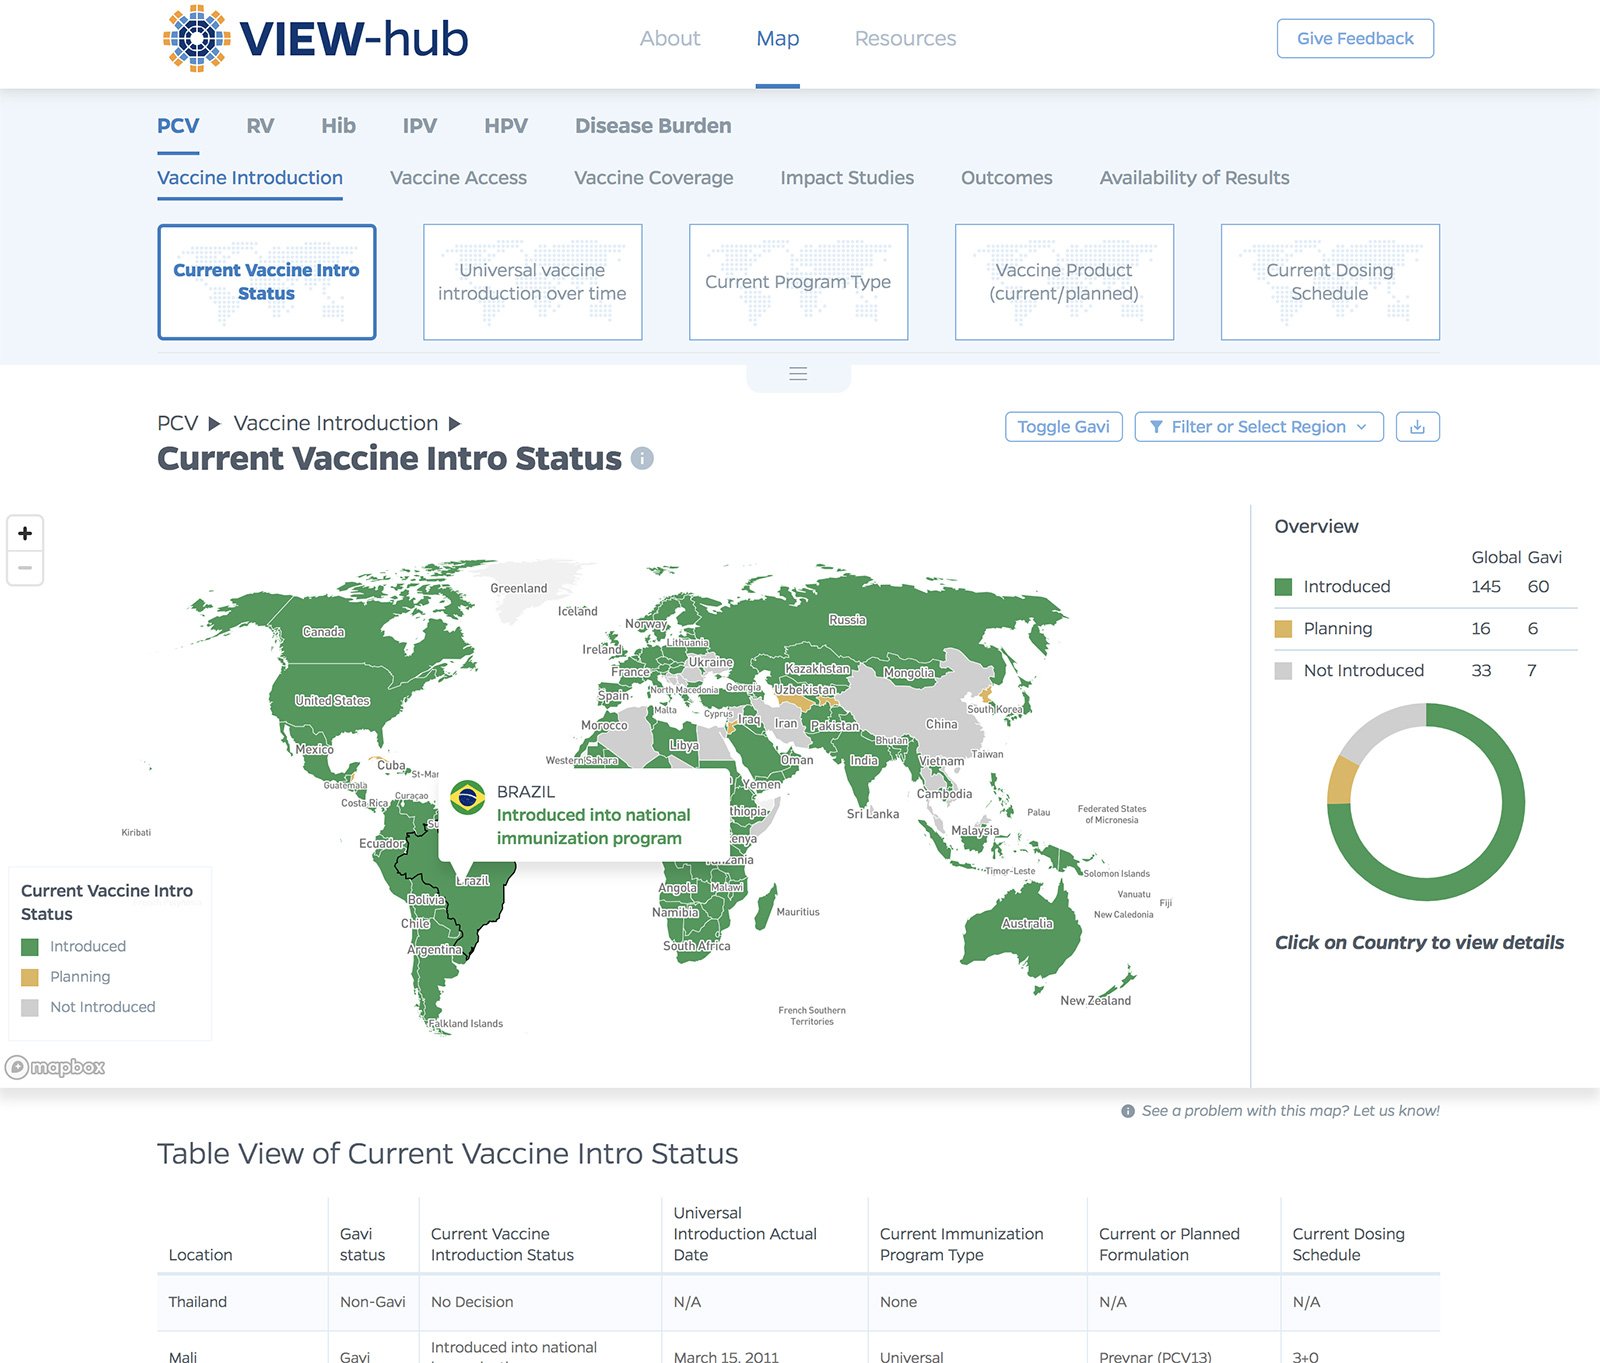 VIEW-hub.org, an Interactive mapping platform for Vaccine data, bu Johns Hopkins University